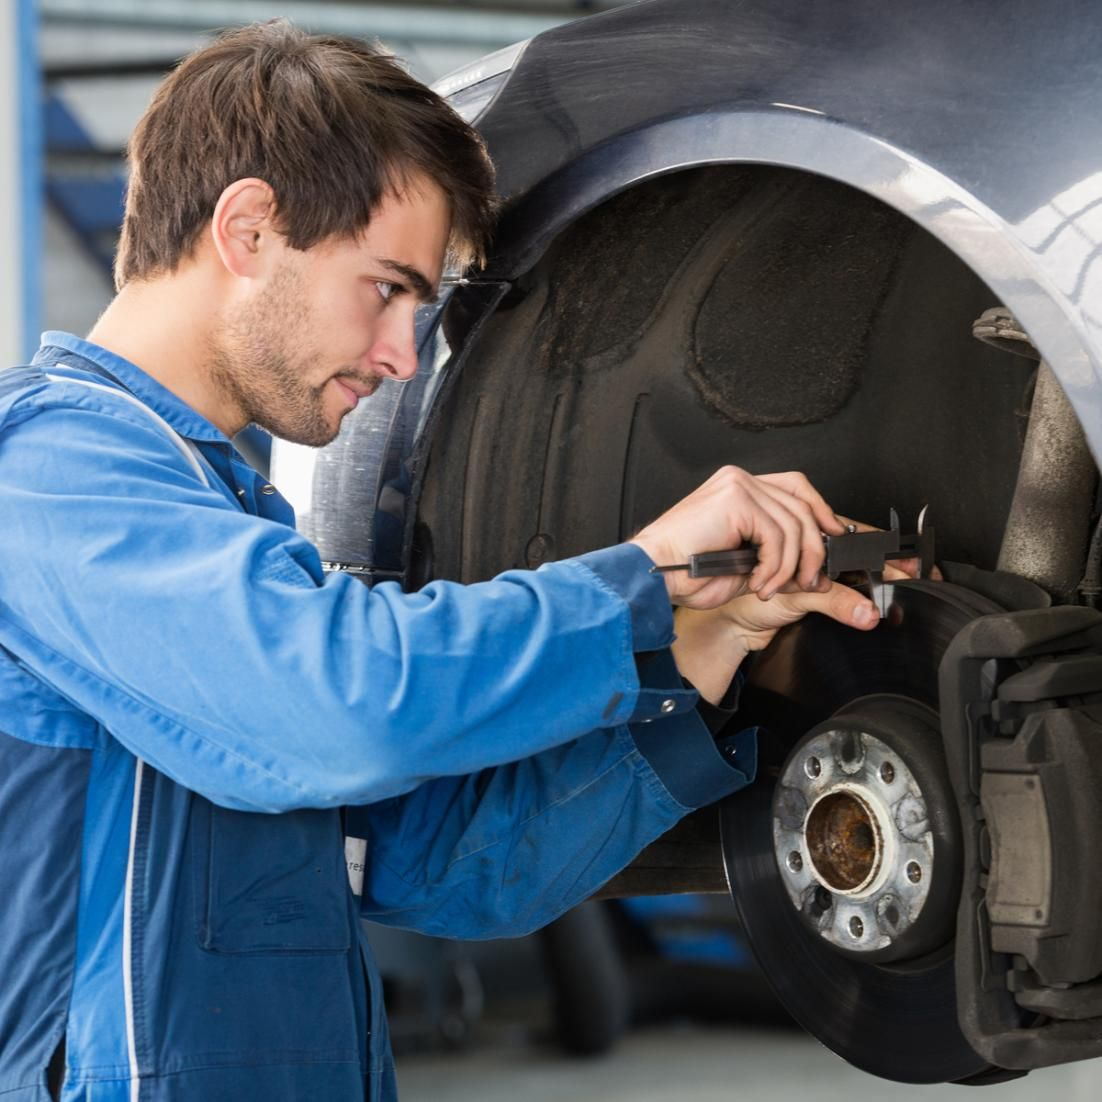 Servicesaturday Do You Have The Stopping Power You Need To Be Safe Out On The Roads We Ve Got You Covered Take Brake Repair Car Maintenance Auto Service